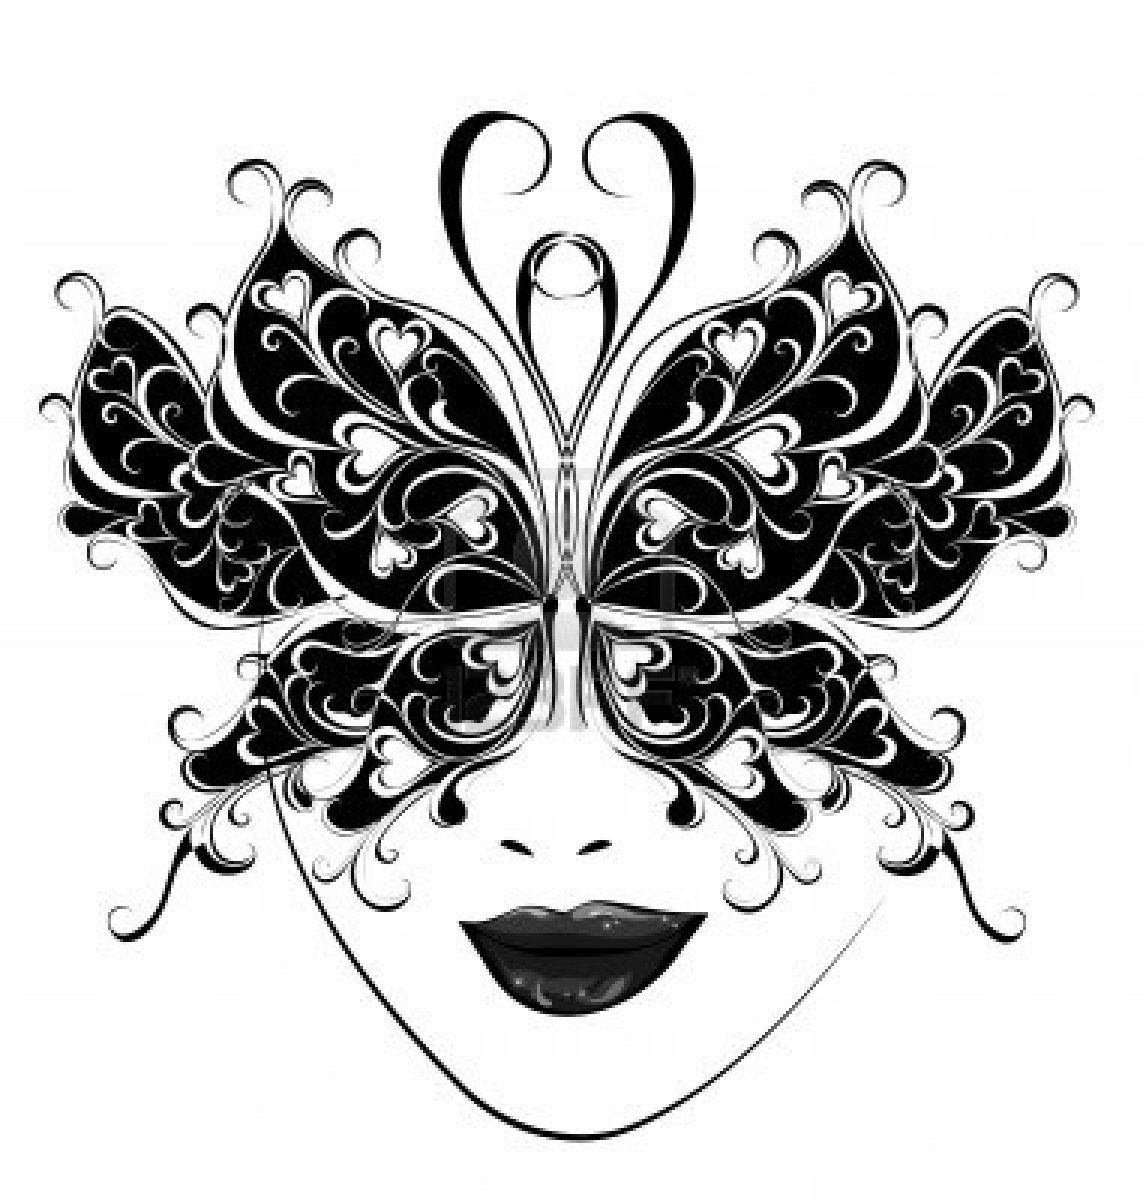 illustration of carnival mask butterfly masks for a masquerade vector art clipart and stock vectors image 16258130  [ 1143 x 1200 Pixel ]